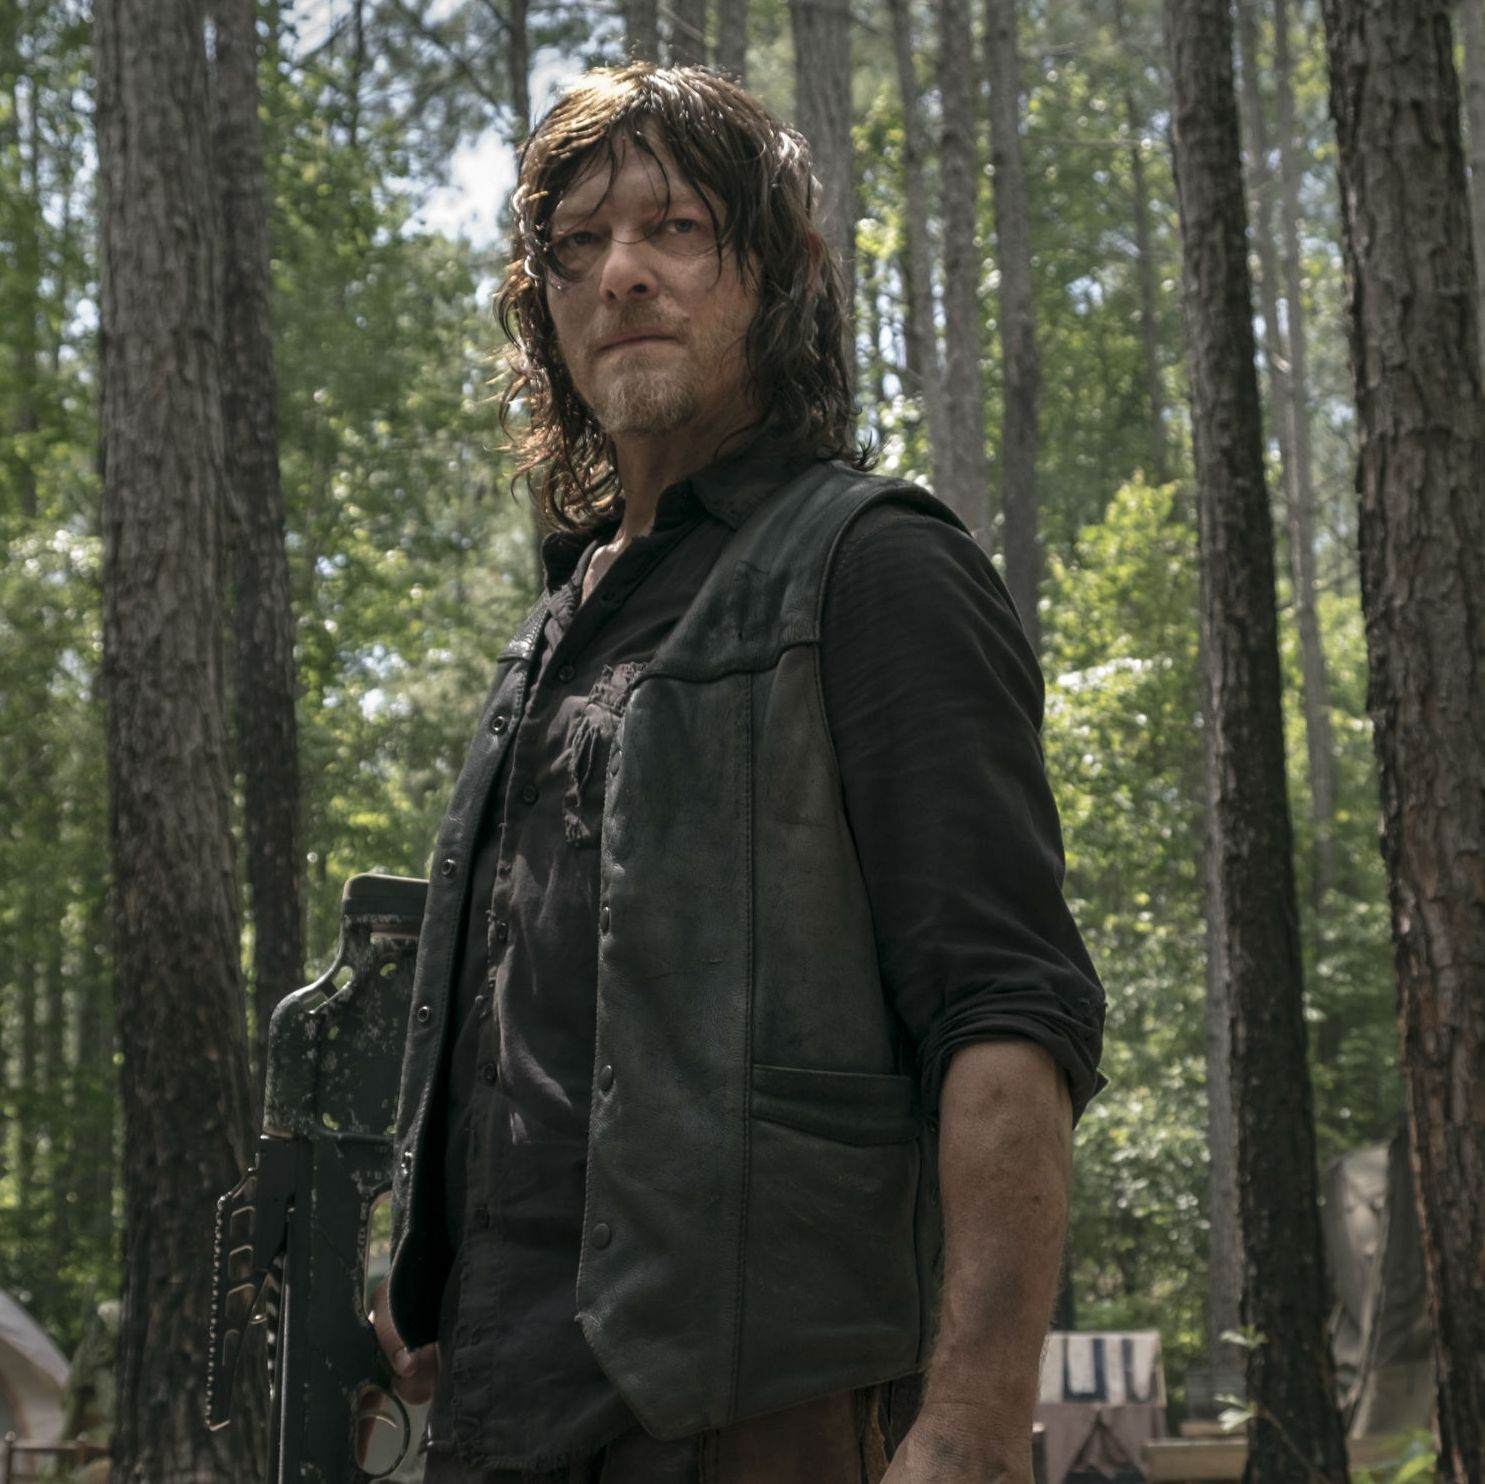 Walking Dead star Norman Reedus wants to stay on the show until the very end